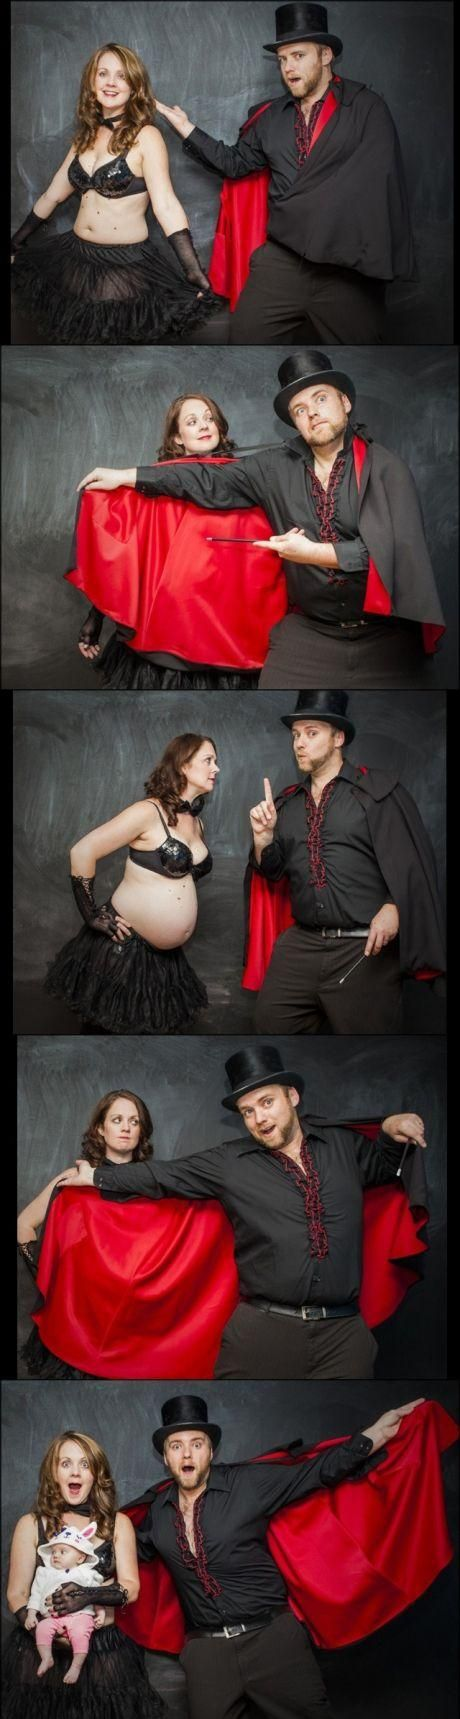 This is how pregnancy works, right? this is a cute idea, but i'd have more covering and classy clothes.